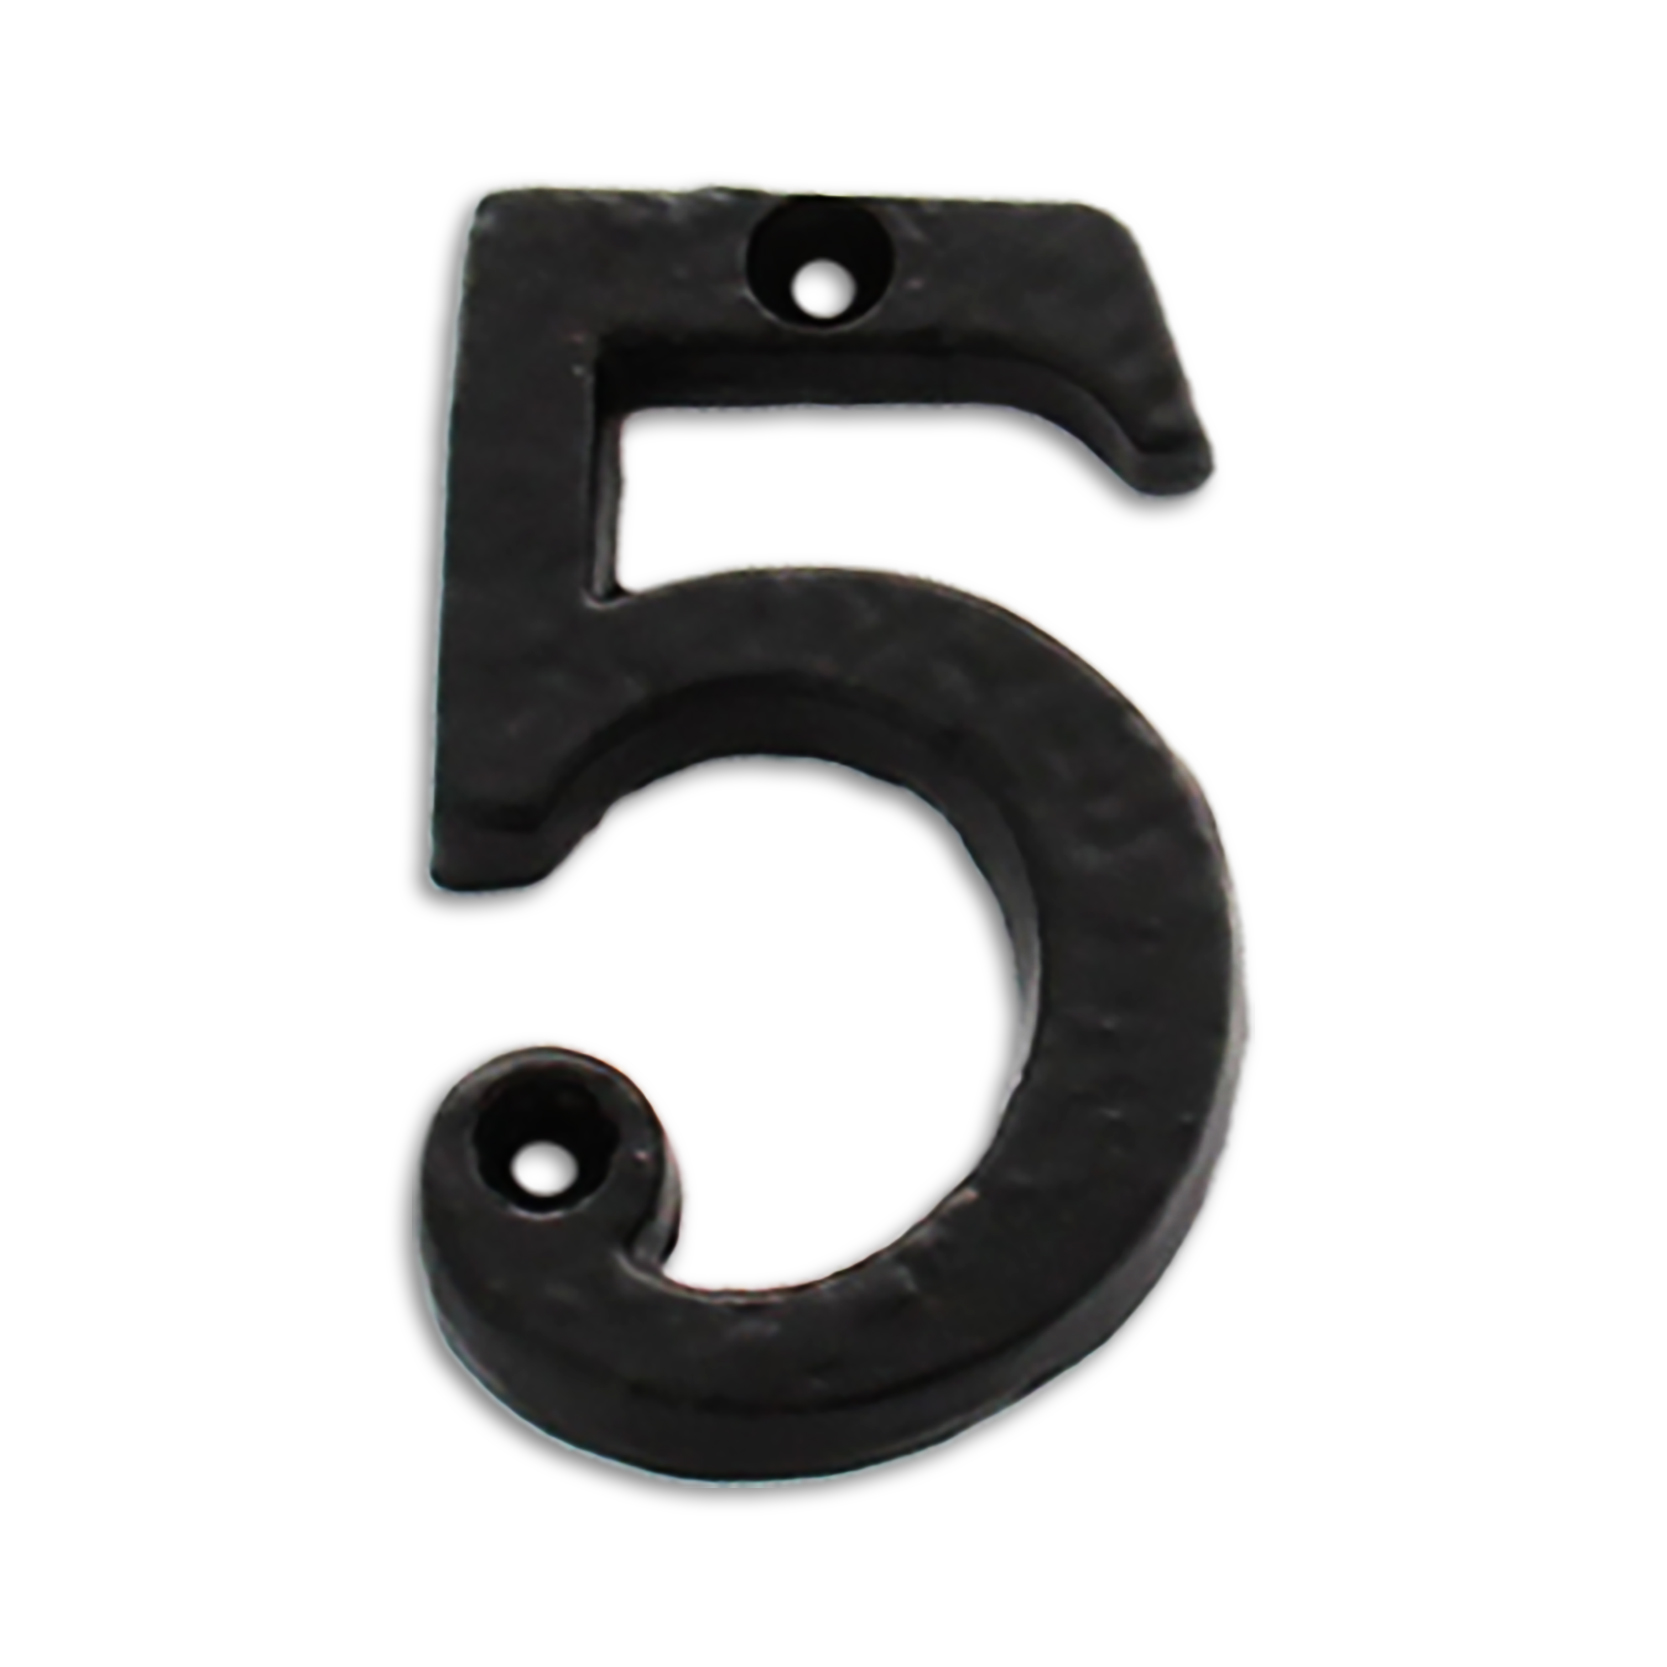 3-inch iron metal house number in iron black finish - metal number 5